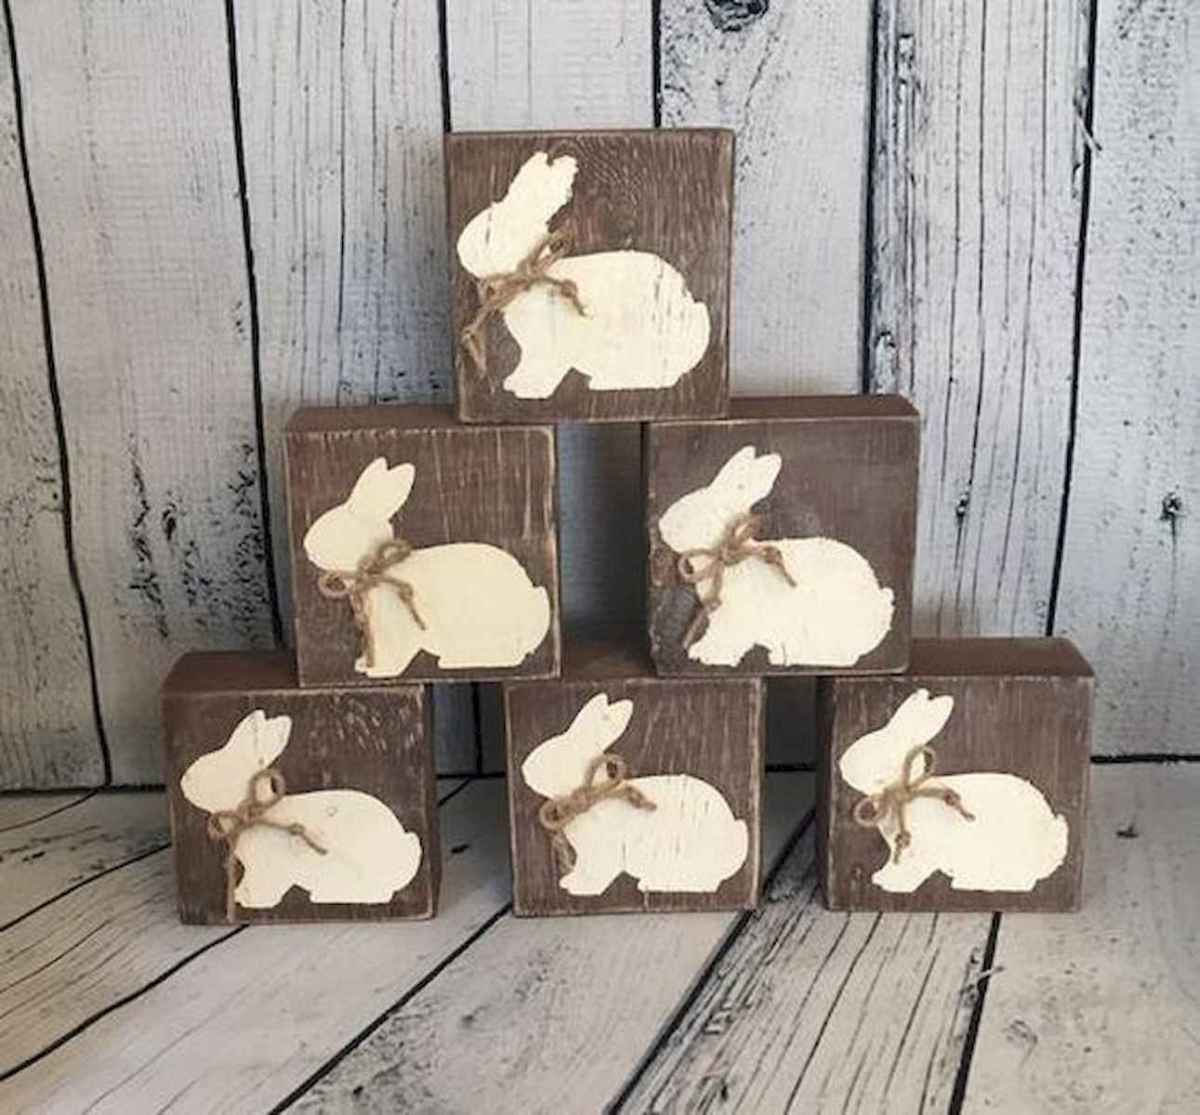 30 Rustic Decorations Ideas for Spring (15)